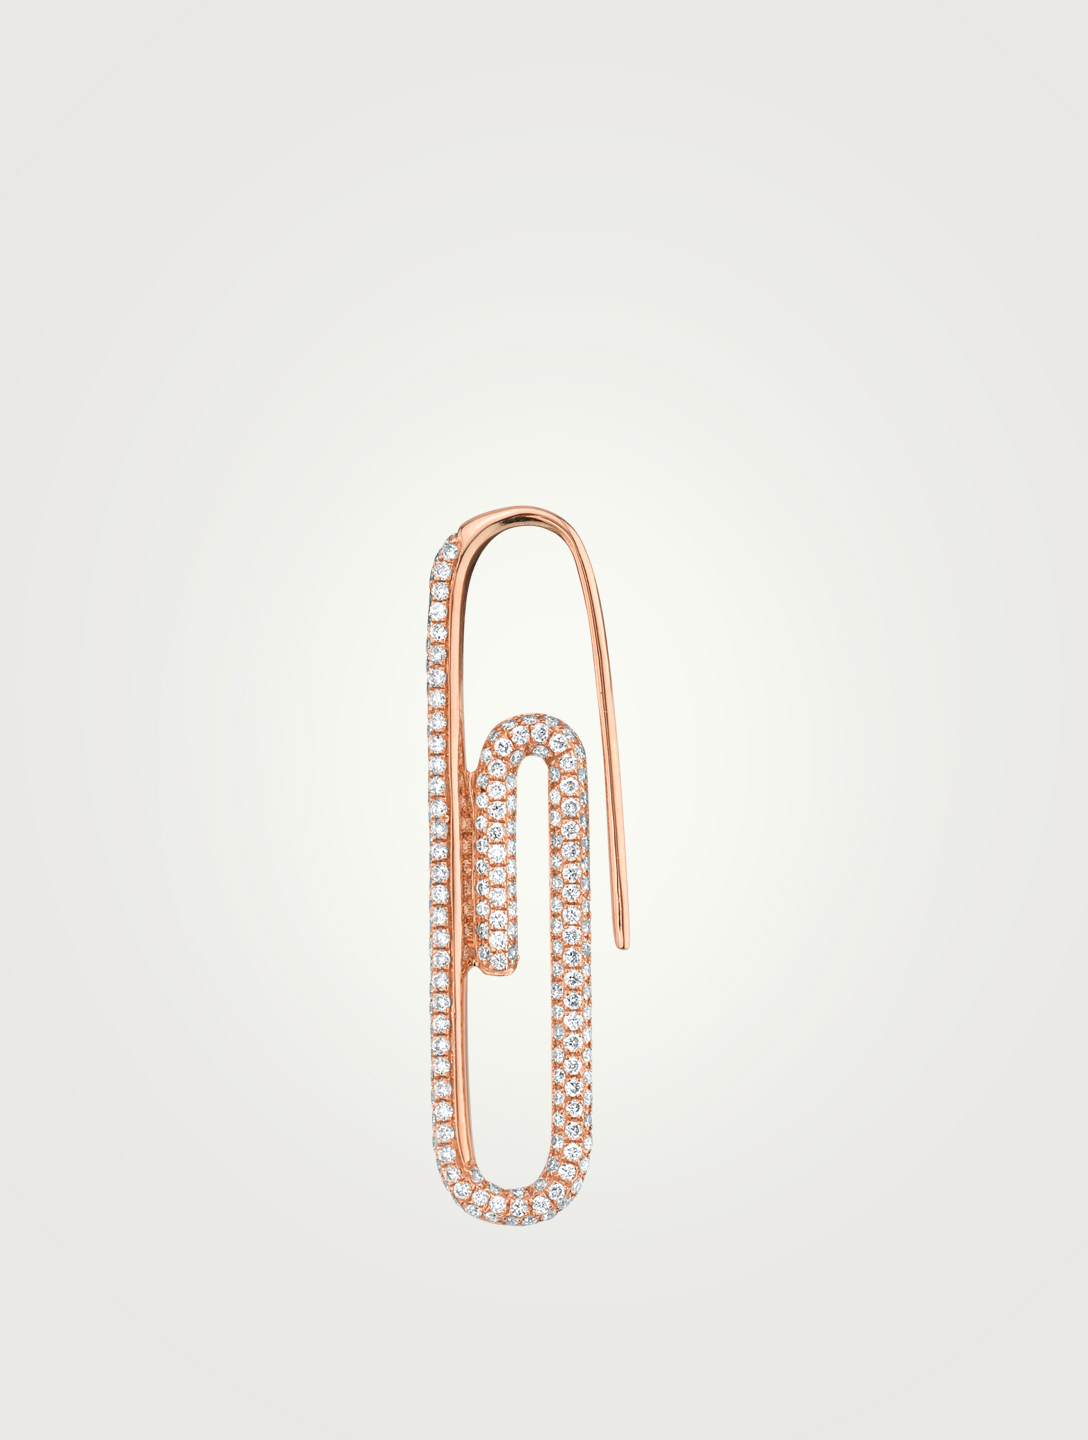 ANITA KO 18K Rose Gold Right Paper Clip Earring With Diamonds Women's Pink